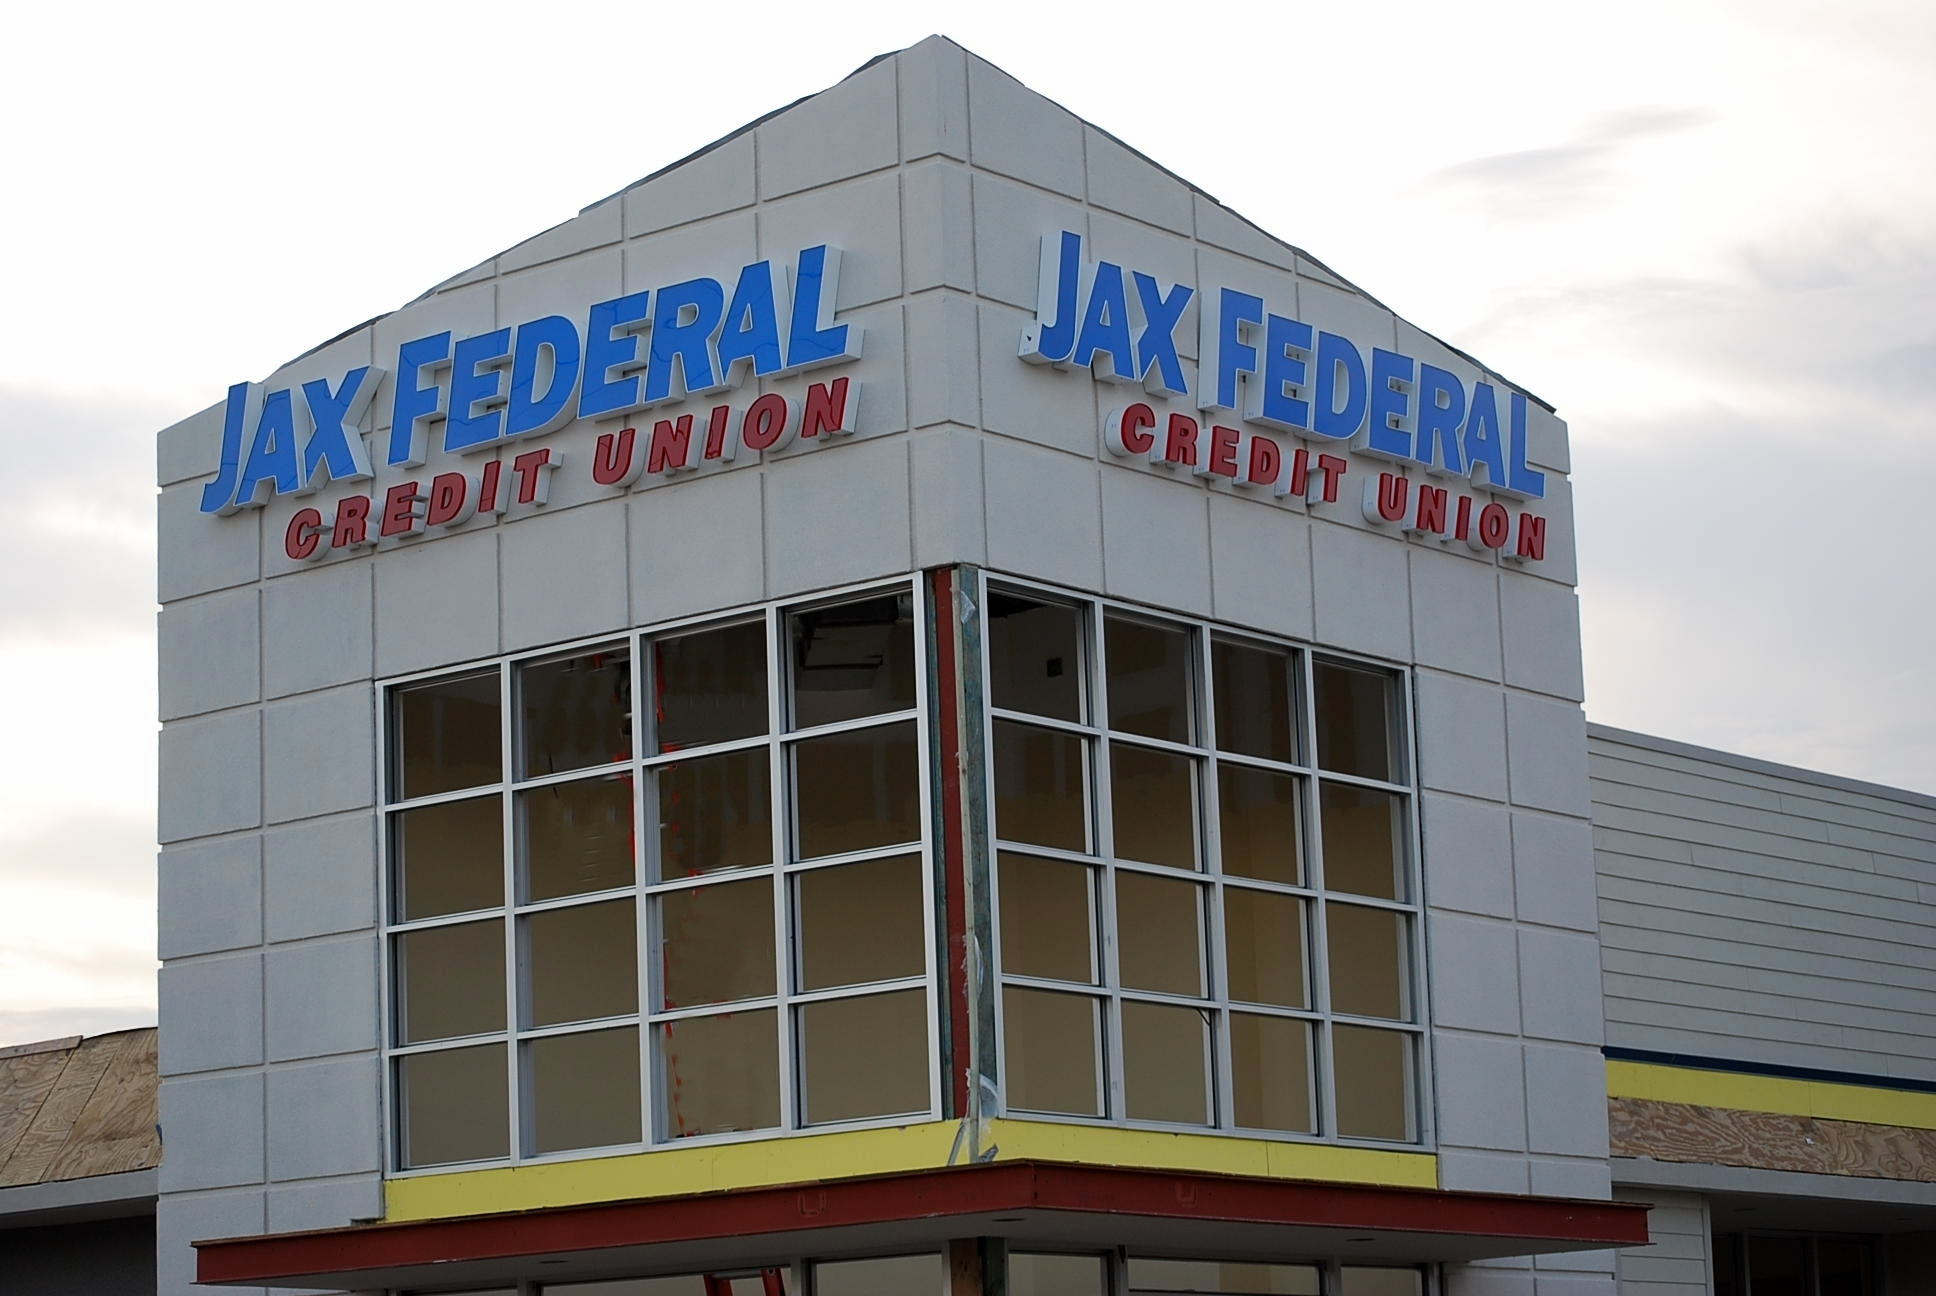 JAX FEDERAL CREDIT UNION